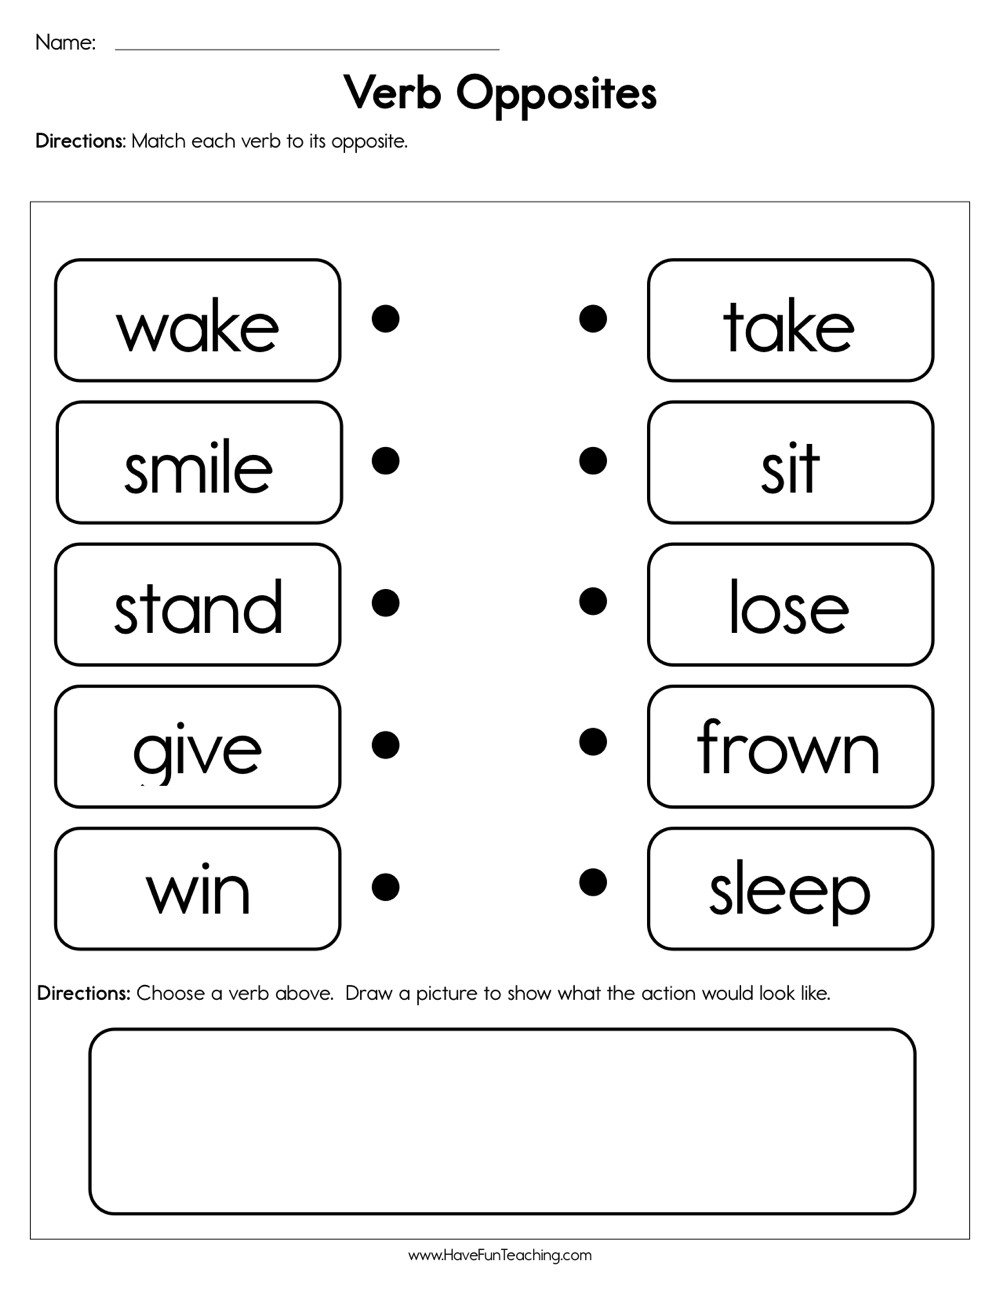 Preschool Opposites Worksheets Verb Opposites Worksheet